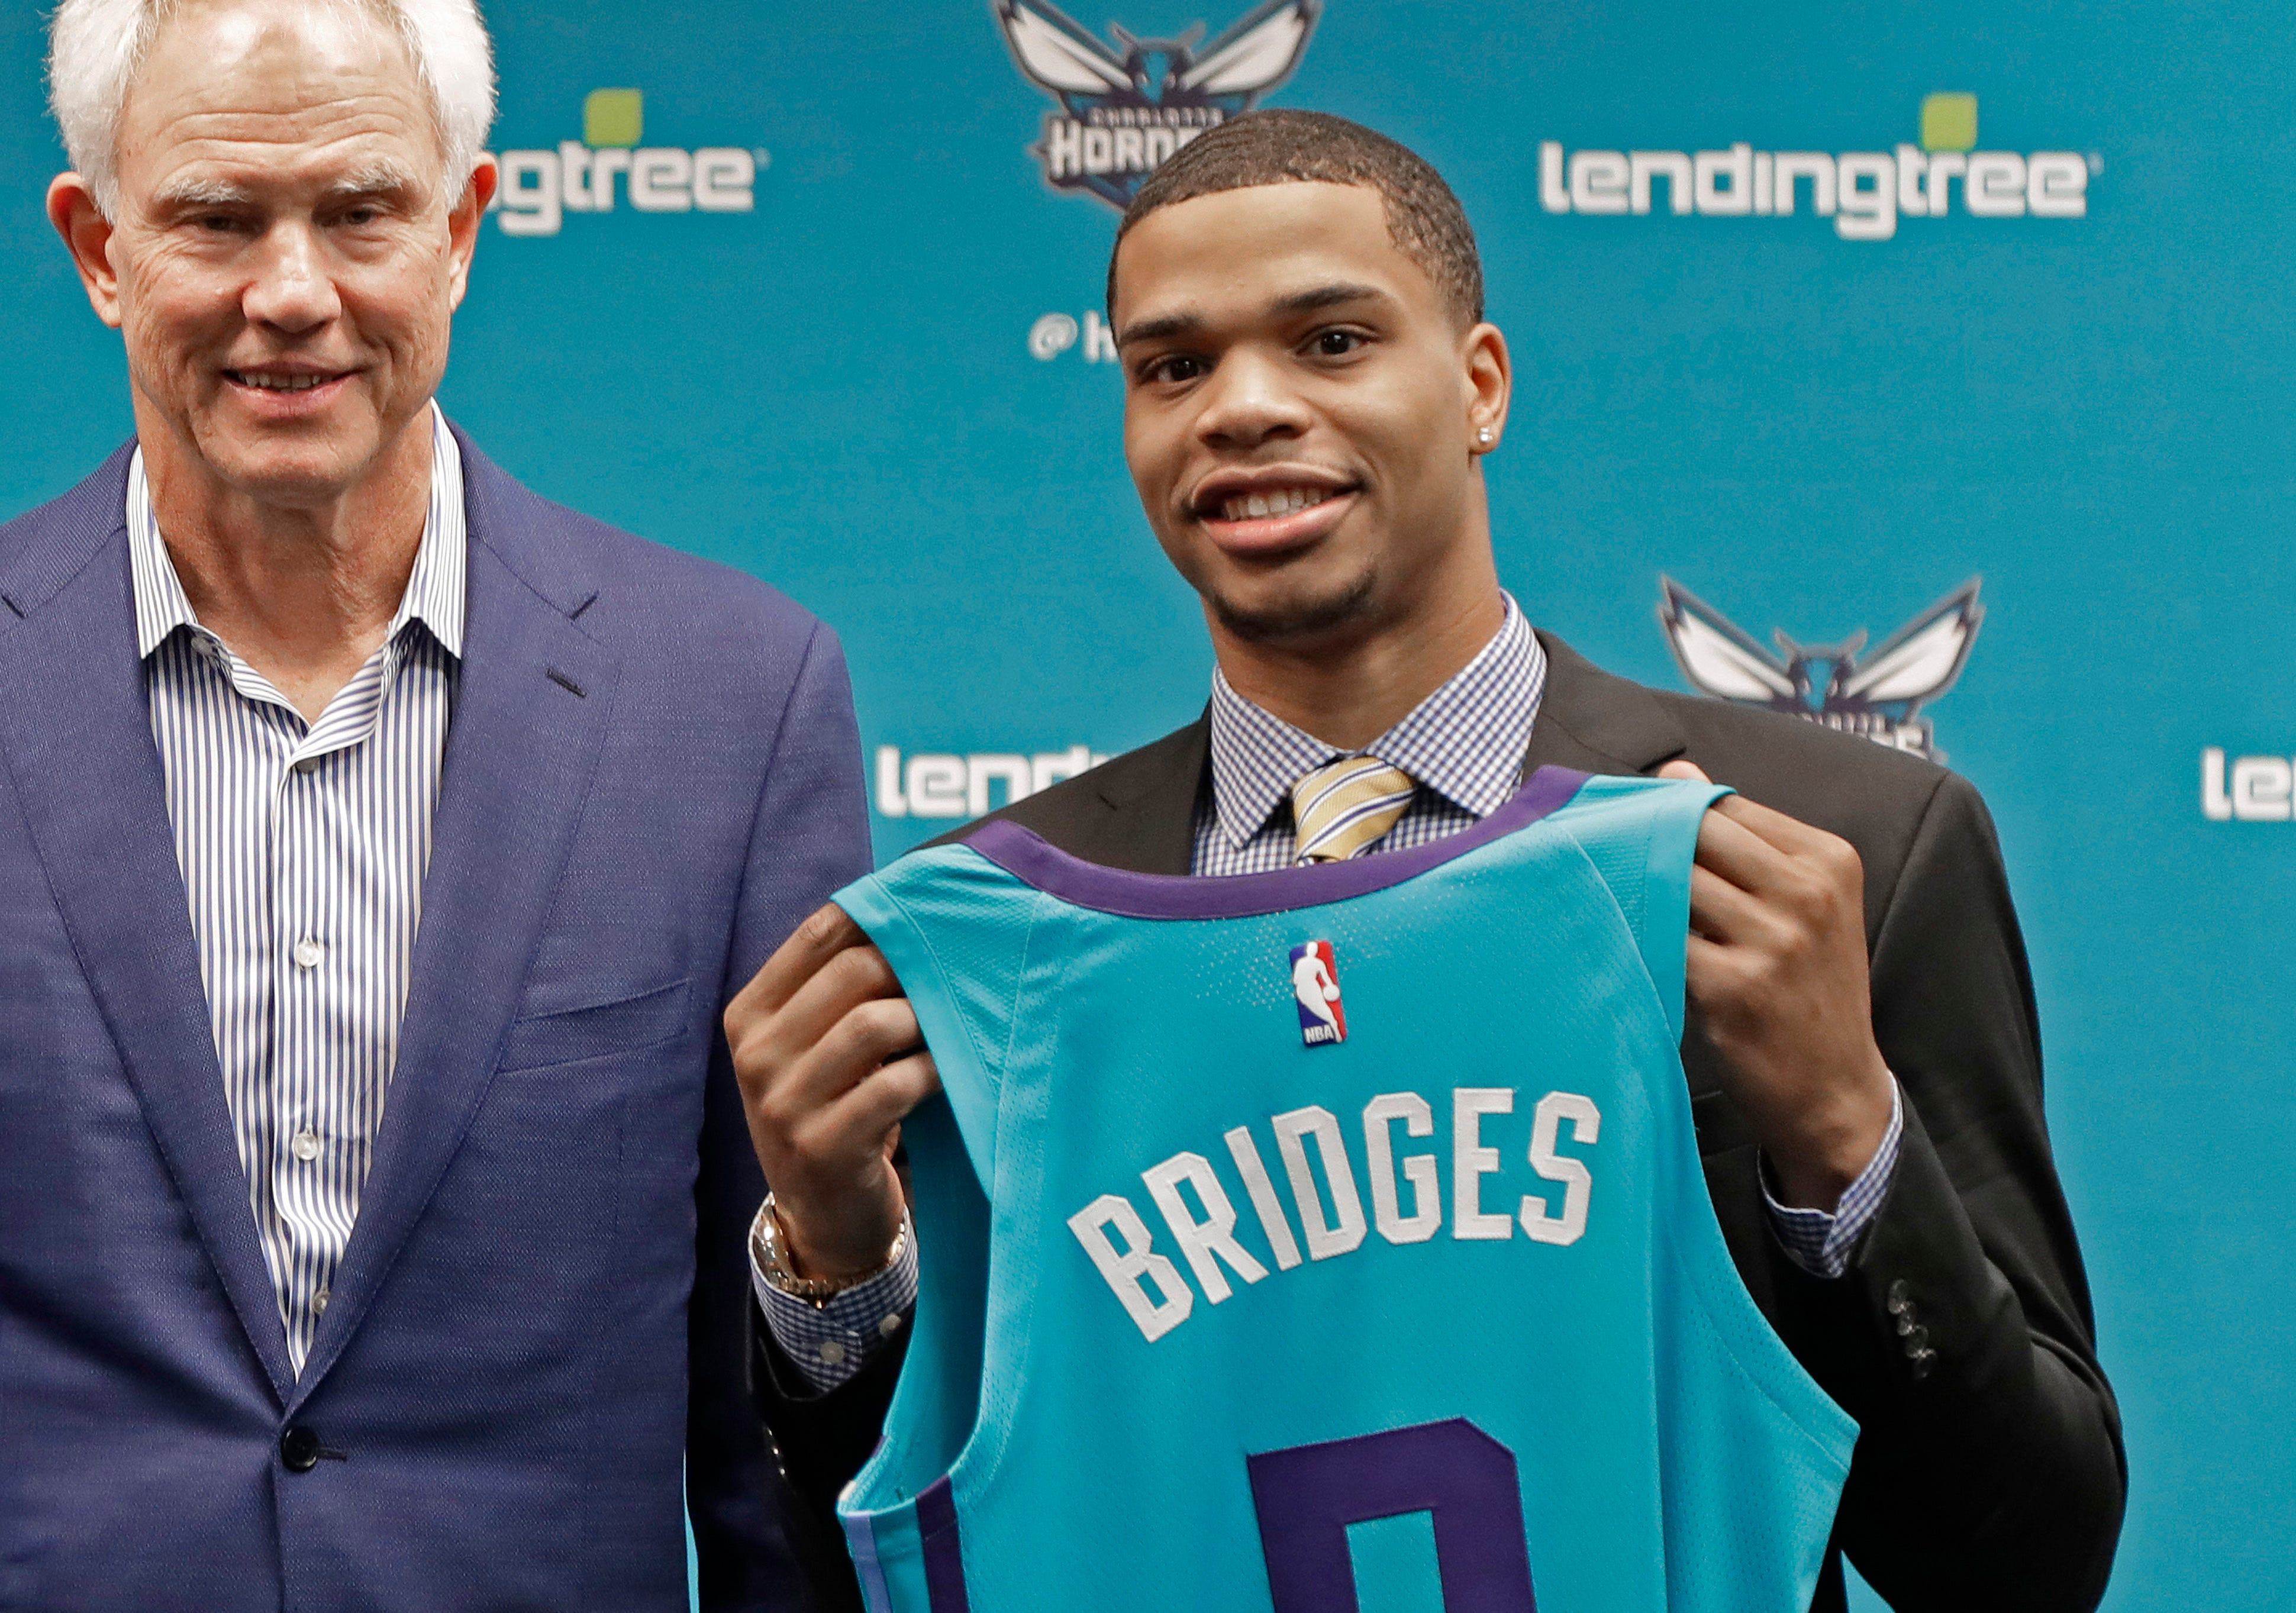 Hornets rookie tried to pull off ridiculous off-the-backboard dunk